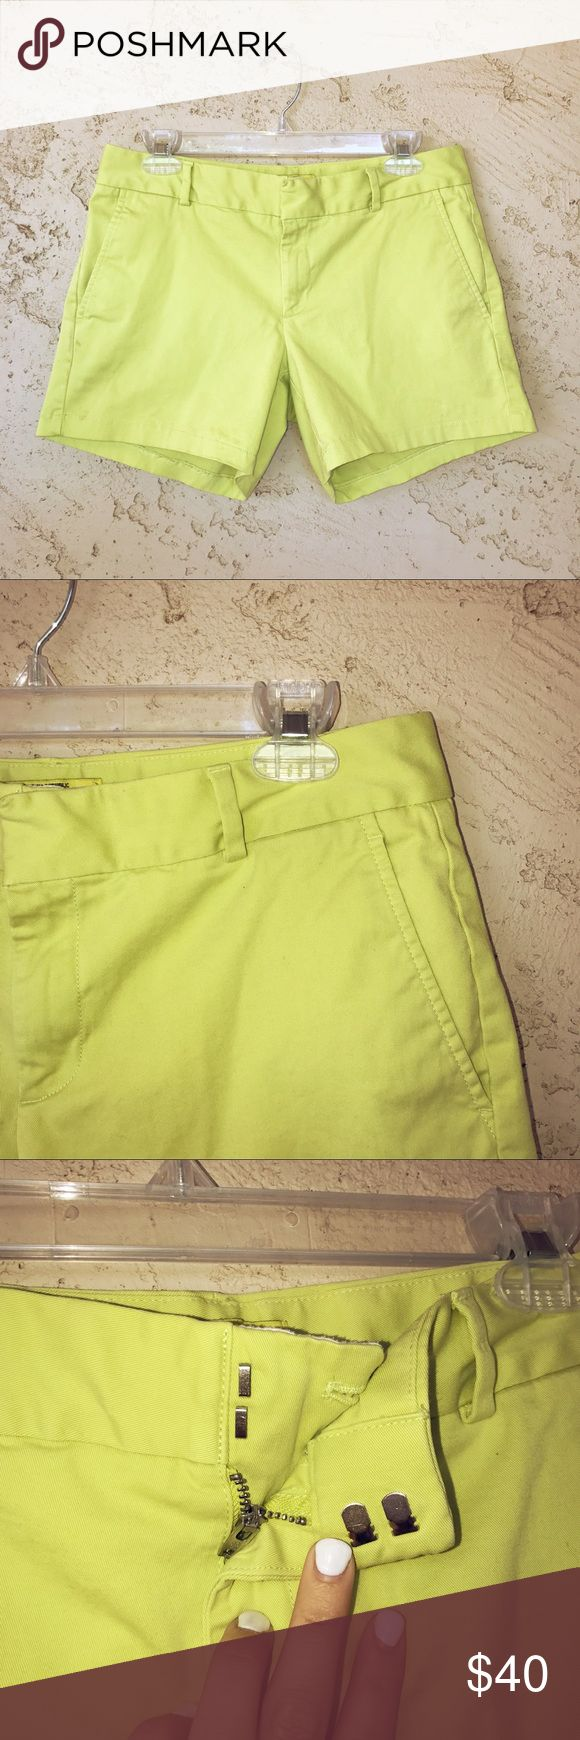 "banana republic milky collection neon green shorts these are banana republic ""milly collection"" neon green shorts. they have a double snap at the top. the color is gorgeous and will make any outfit just pop! they are in fabulous condition, look like new!  i do not trade, but feel free to make me an offer using the offer button 😊 Banana Republic Shorts"